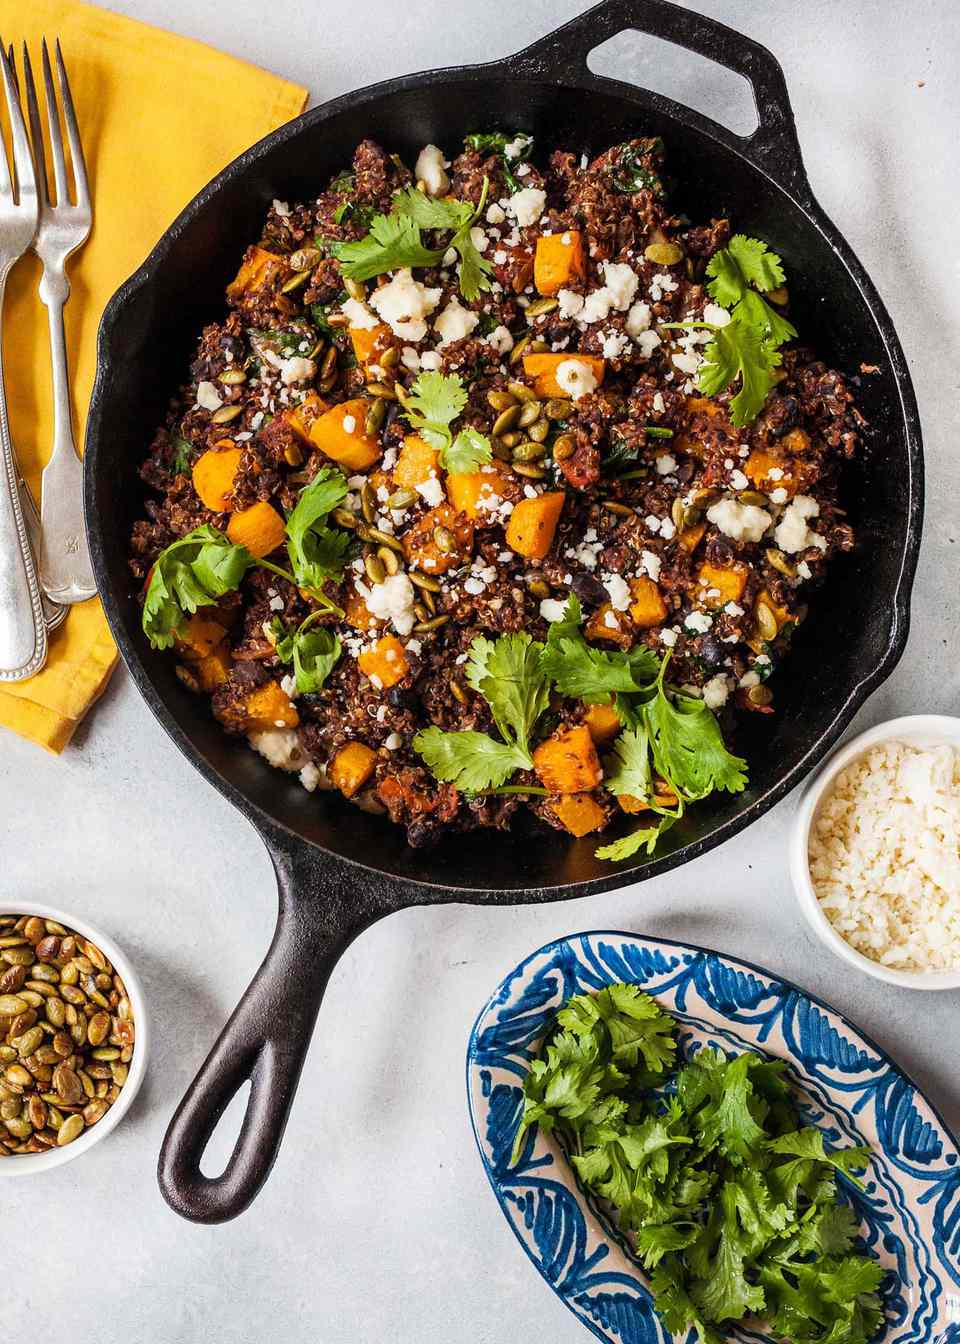 Top view of a cast iron skillet of vegetarian skillet dinner with pumpkin seeds, quinoa, butternut squash and cilantro visible in the pot. Clockwise around the pot is a small bowl of white rice, a small platter of cilantro, a ramiken of roasted pumpkin seeds and a yellow napkin with two forks side by side.